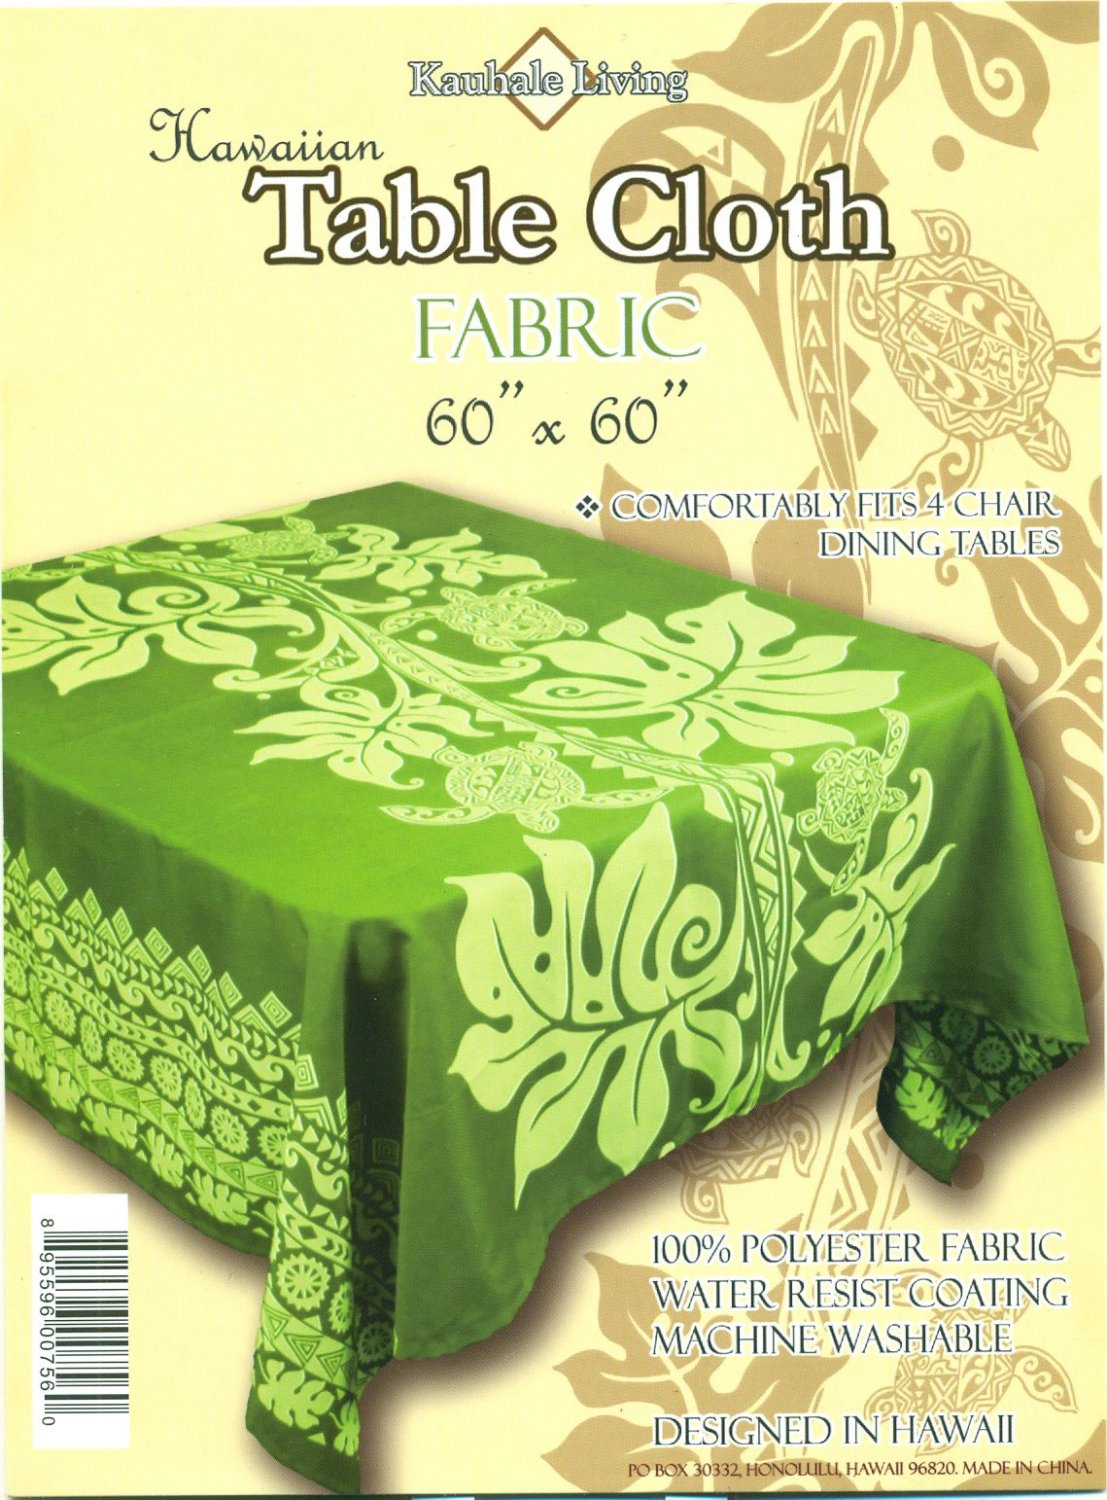 Hawaiian Tropical Fabric Tablecloth 60-inch By 60-inch (Honu Turtle and Monstera, Green color)